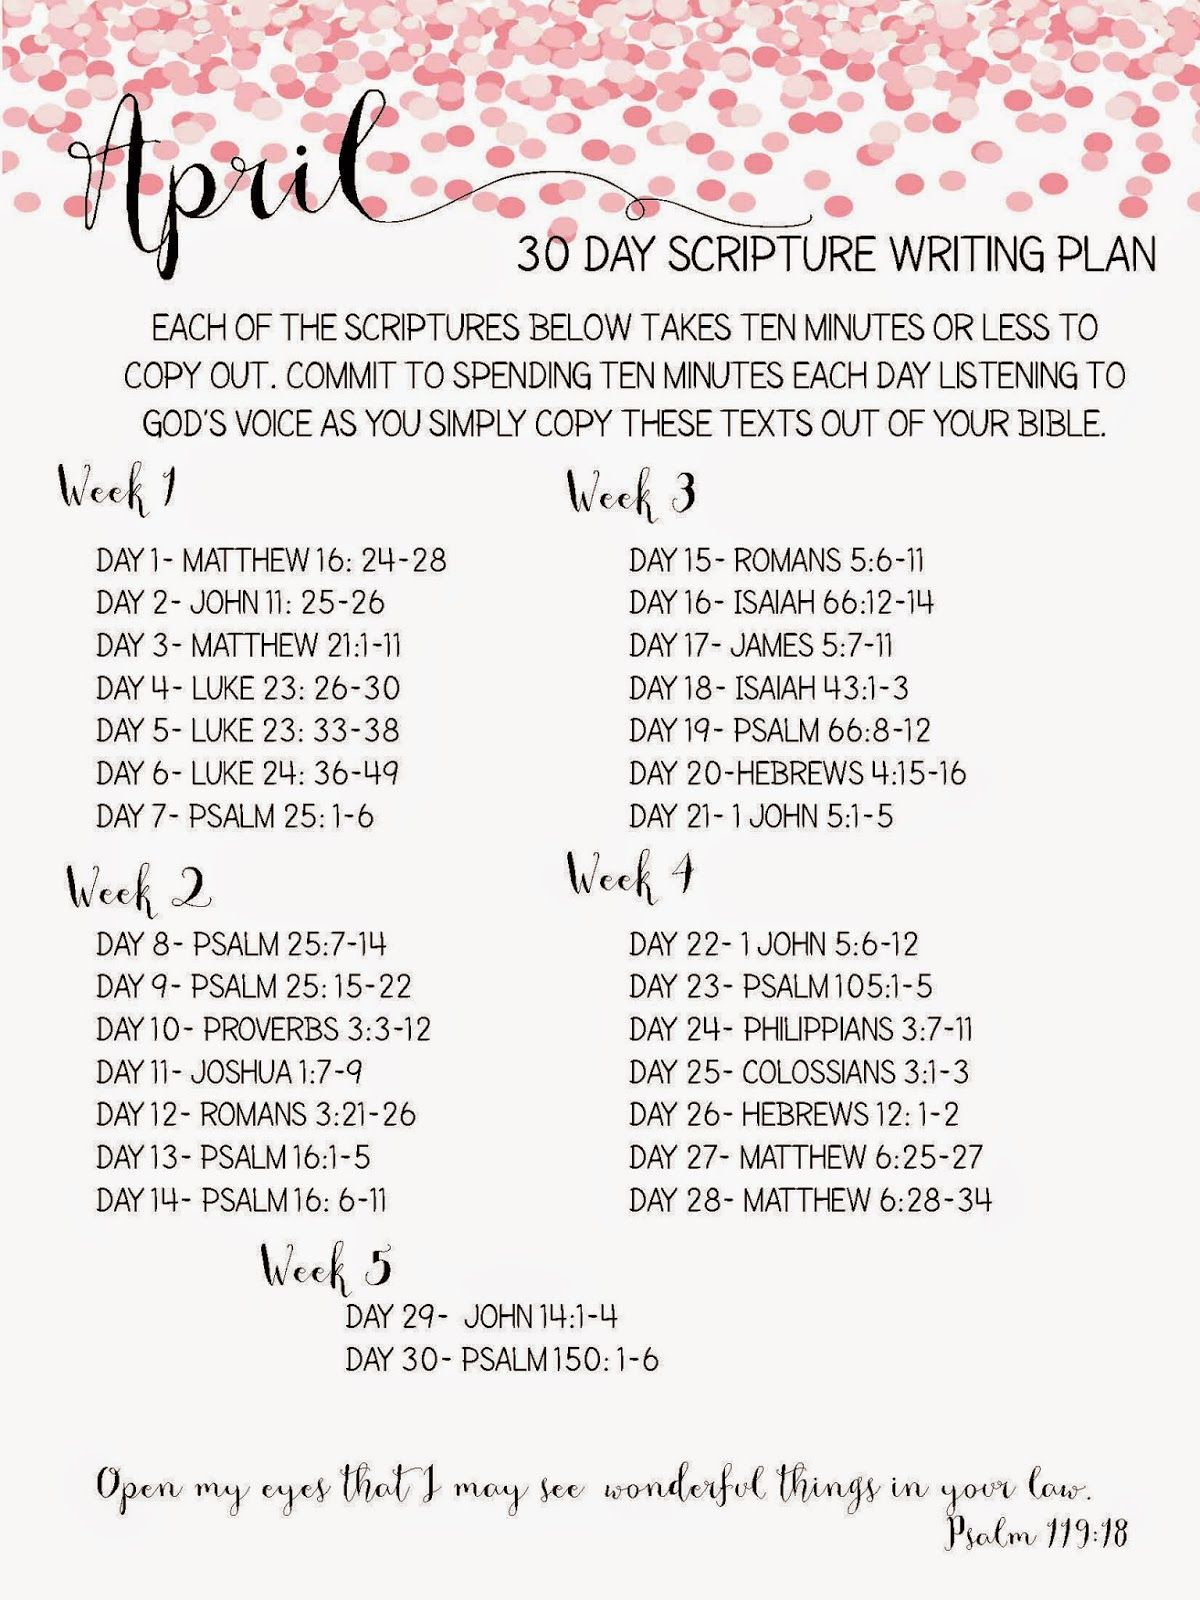 Sweet Blessings Scripture Writing Plan A Simple Devotion